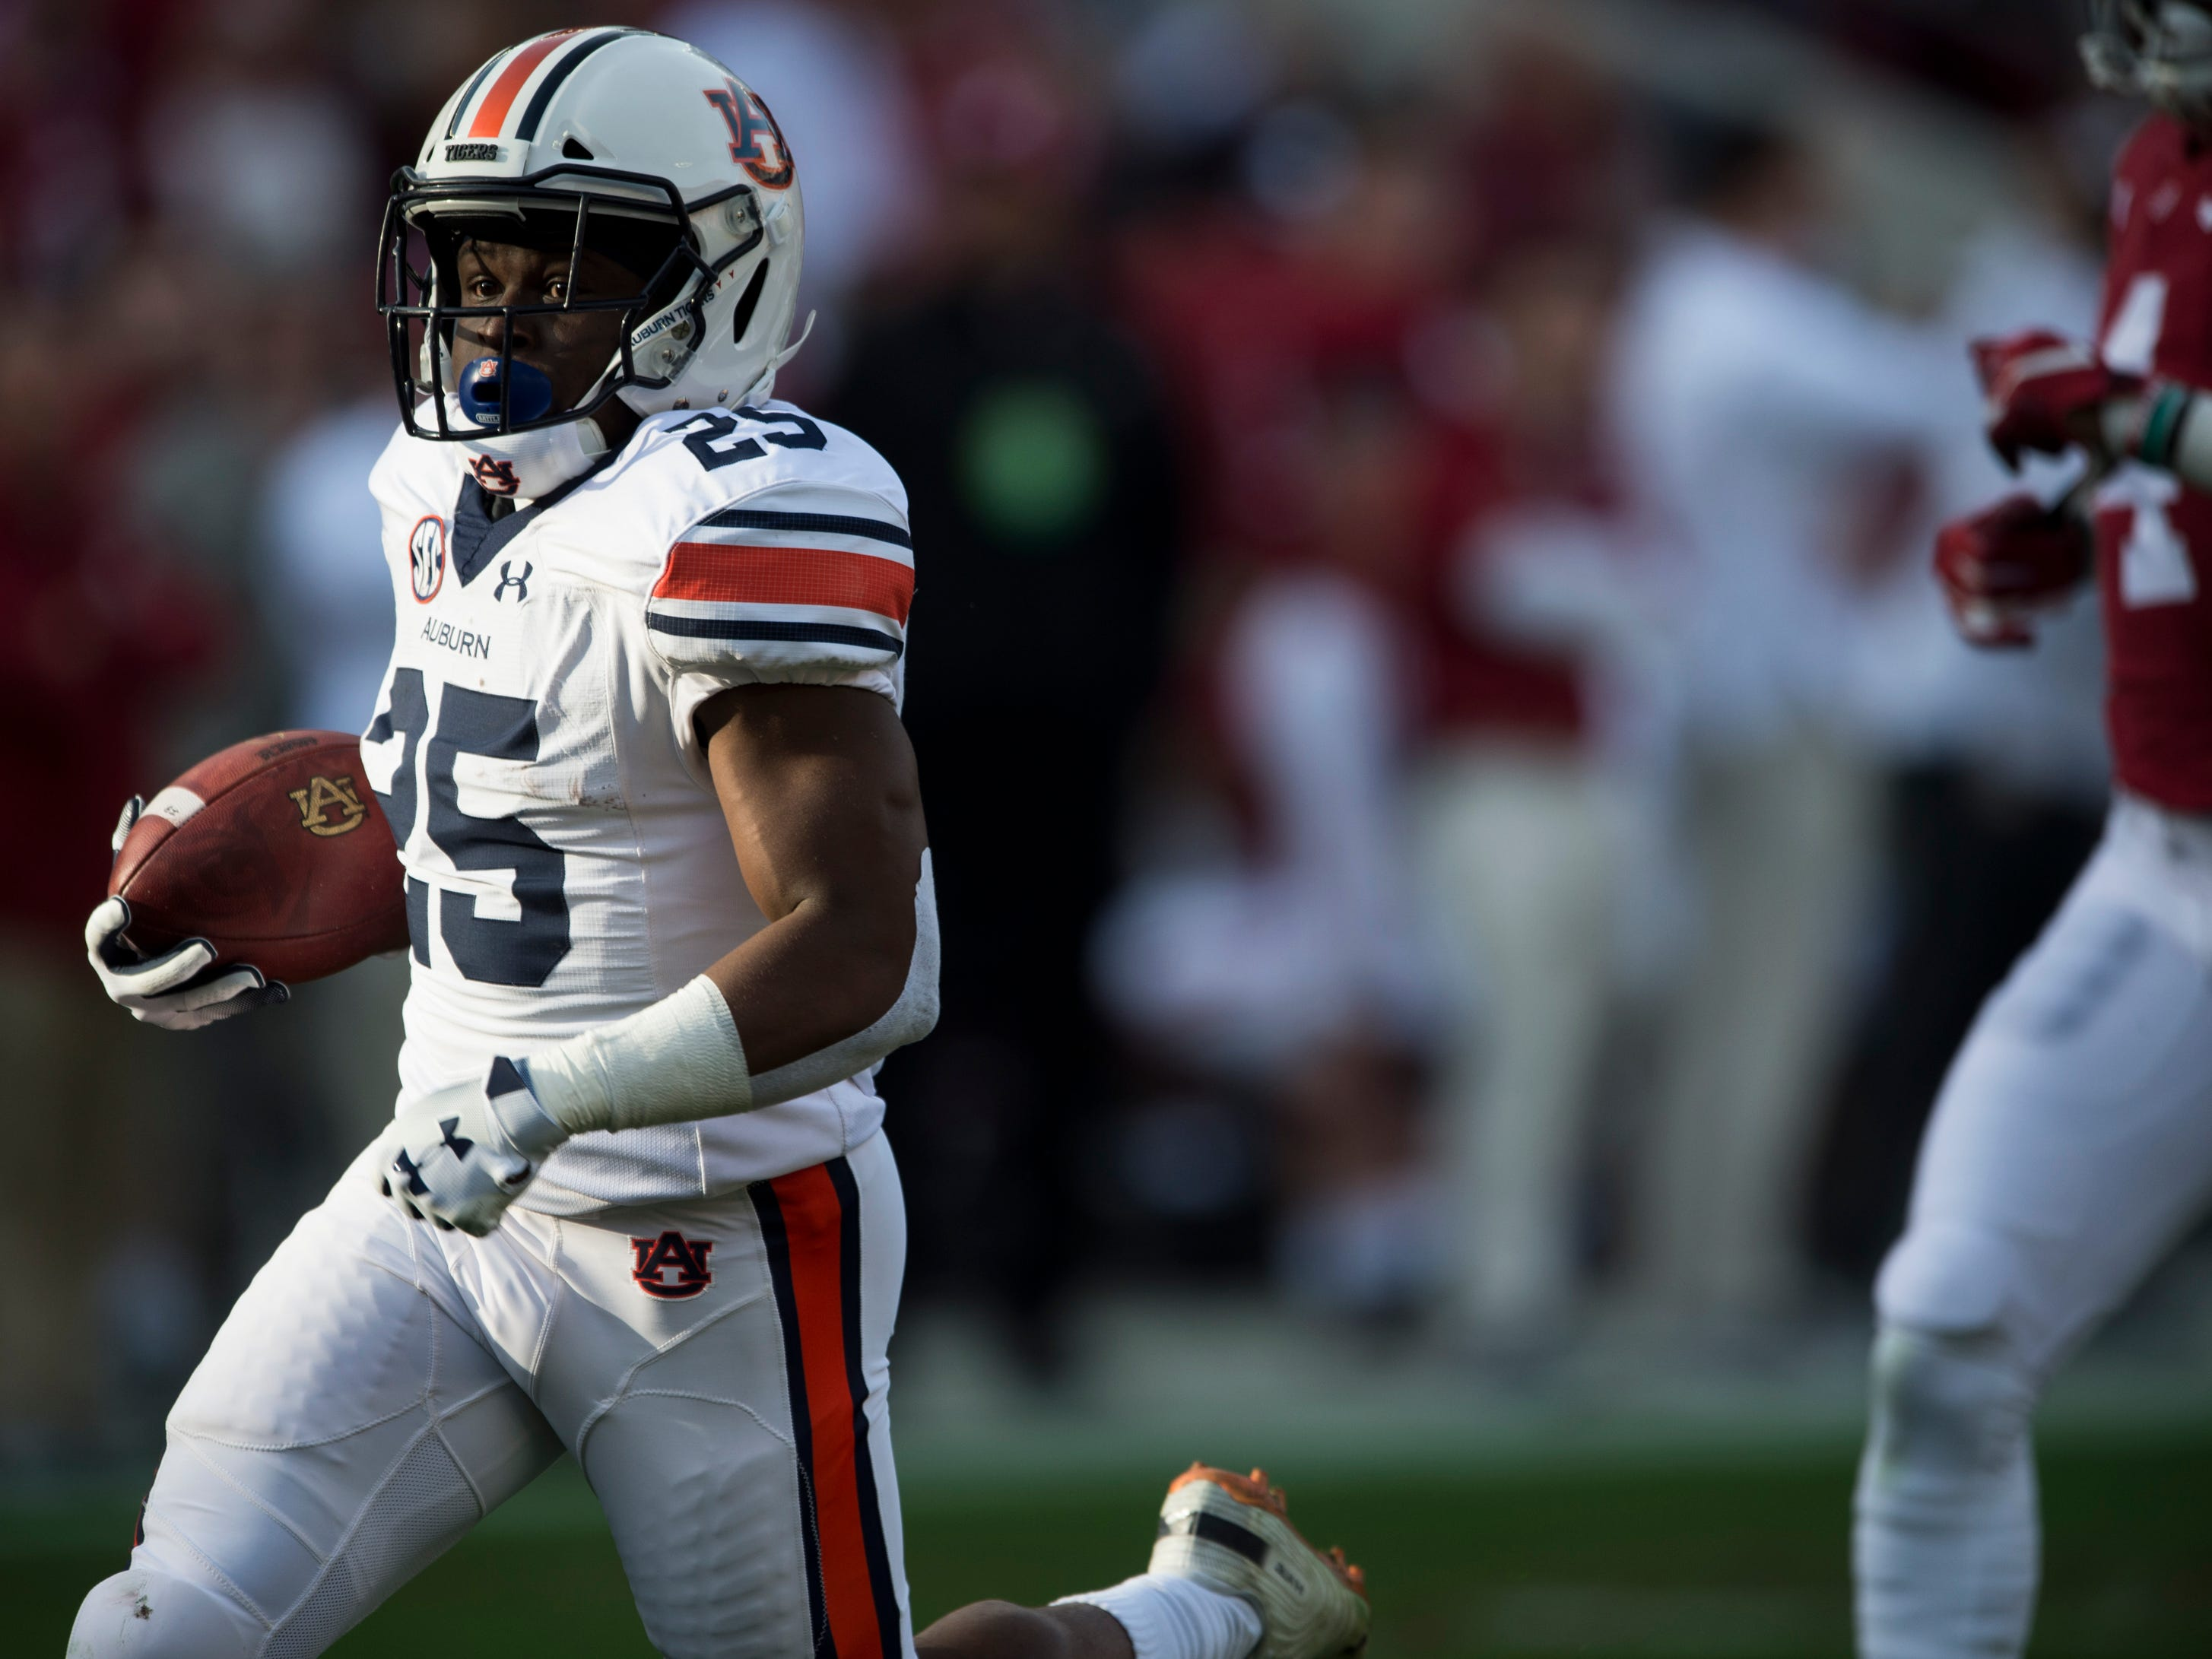 Auburn running back Shaun Shivers (25) breaks a big run that is called back after a holding penalty during the Iron Bowl at Bryant-Denny Stadium in Tuscaloosa, Ala., on Saturday, Nov. 24, 2018. Alabama leads Auburn 17-14 at halftime.